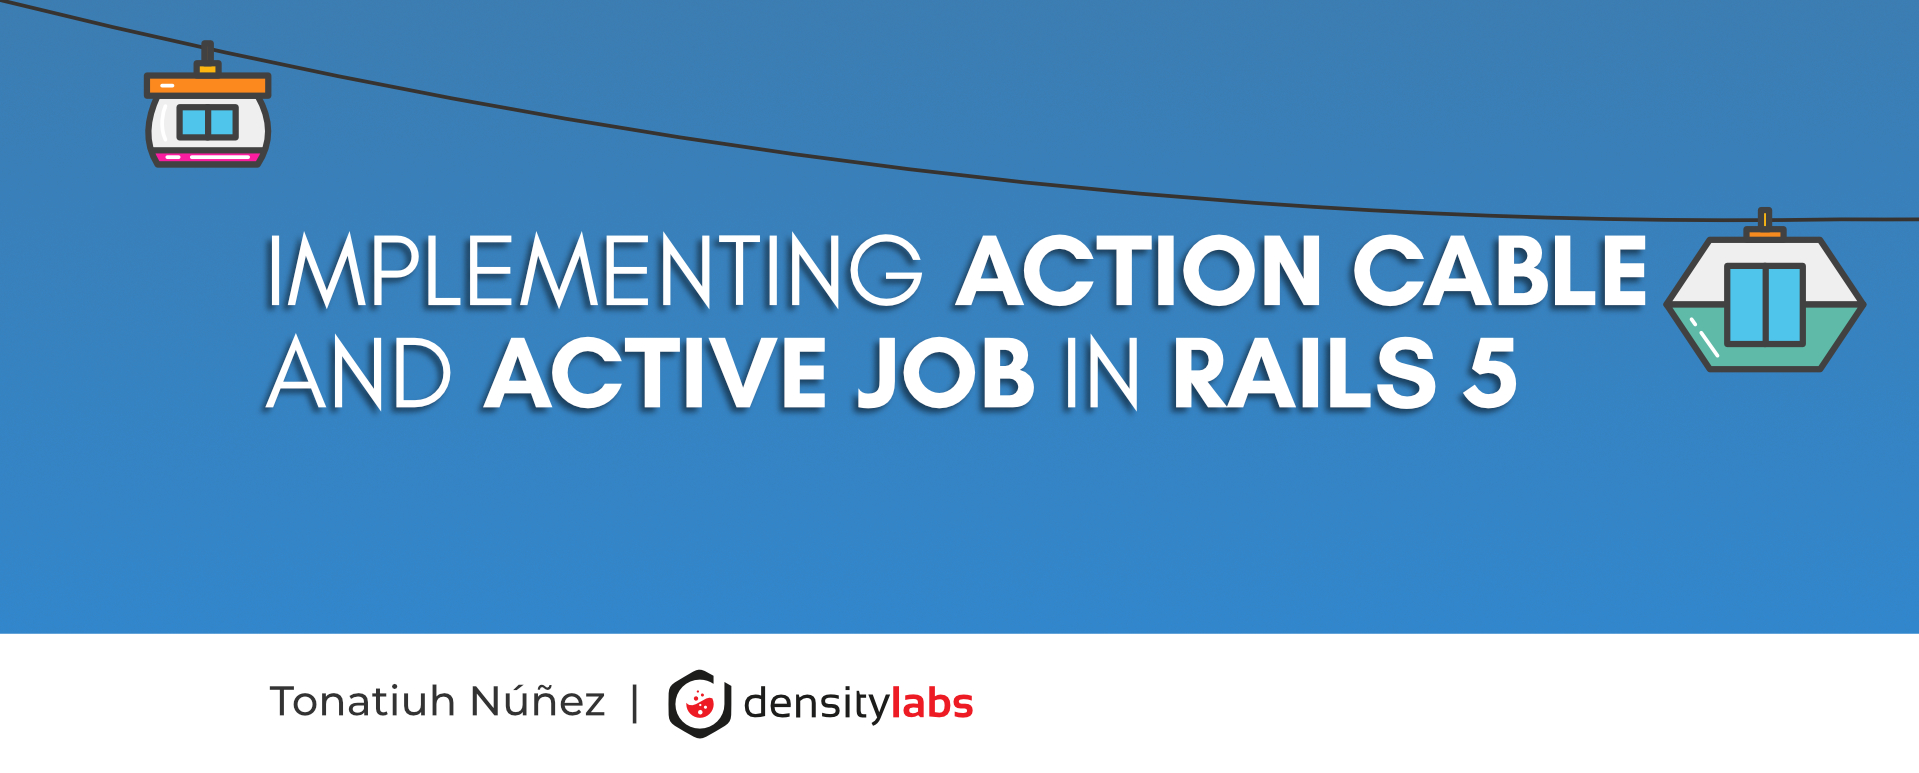 Implementing Action Cable and Active Job in Rails 5